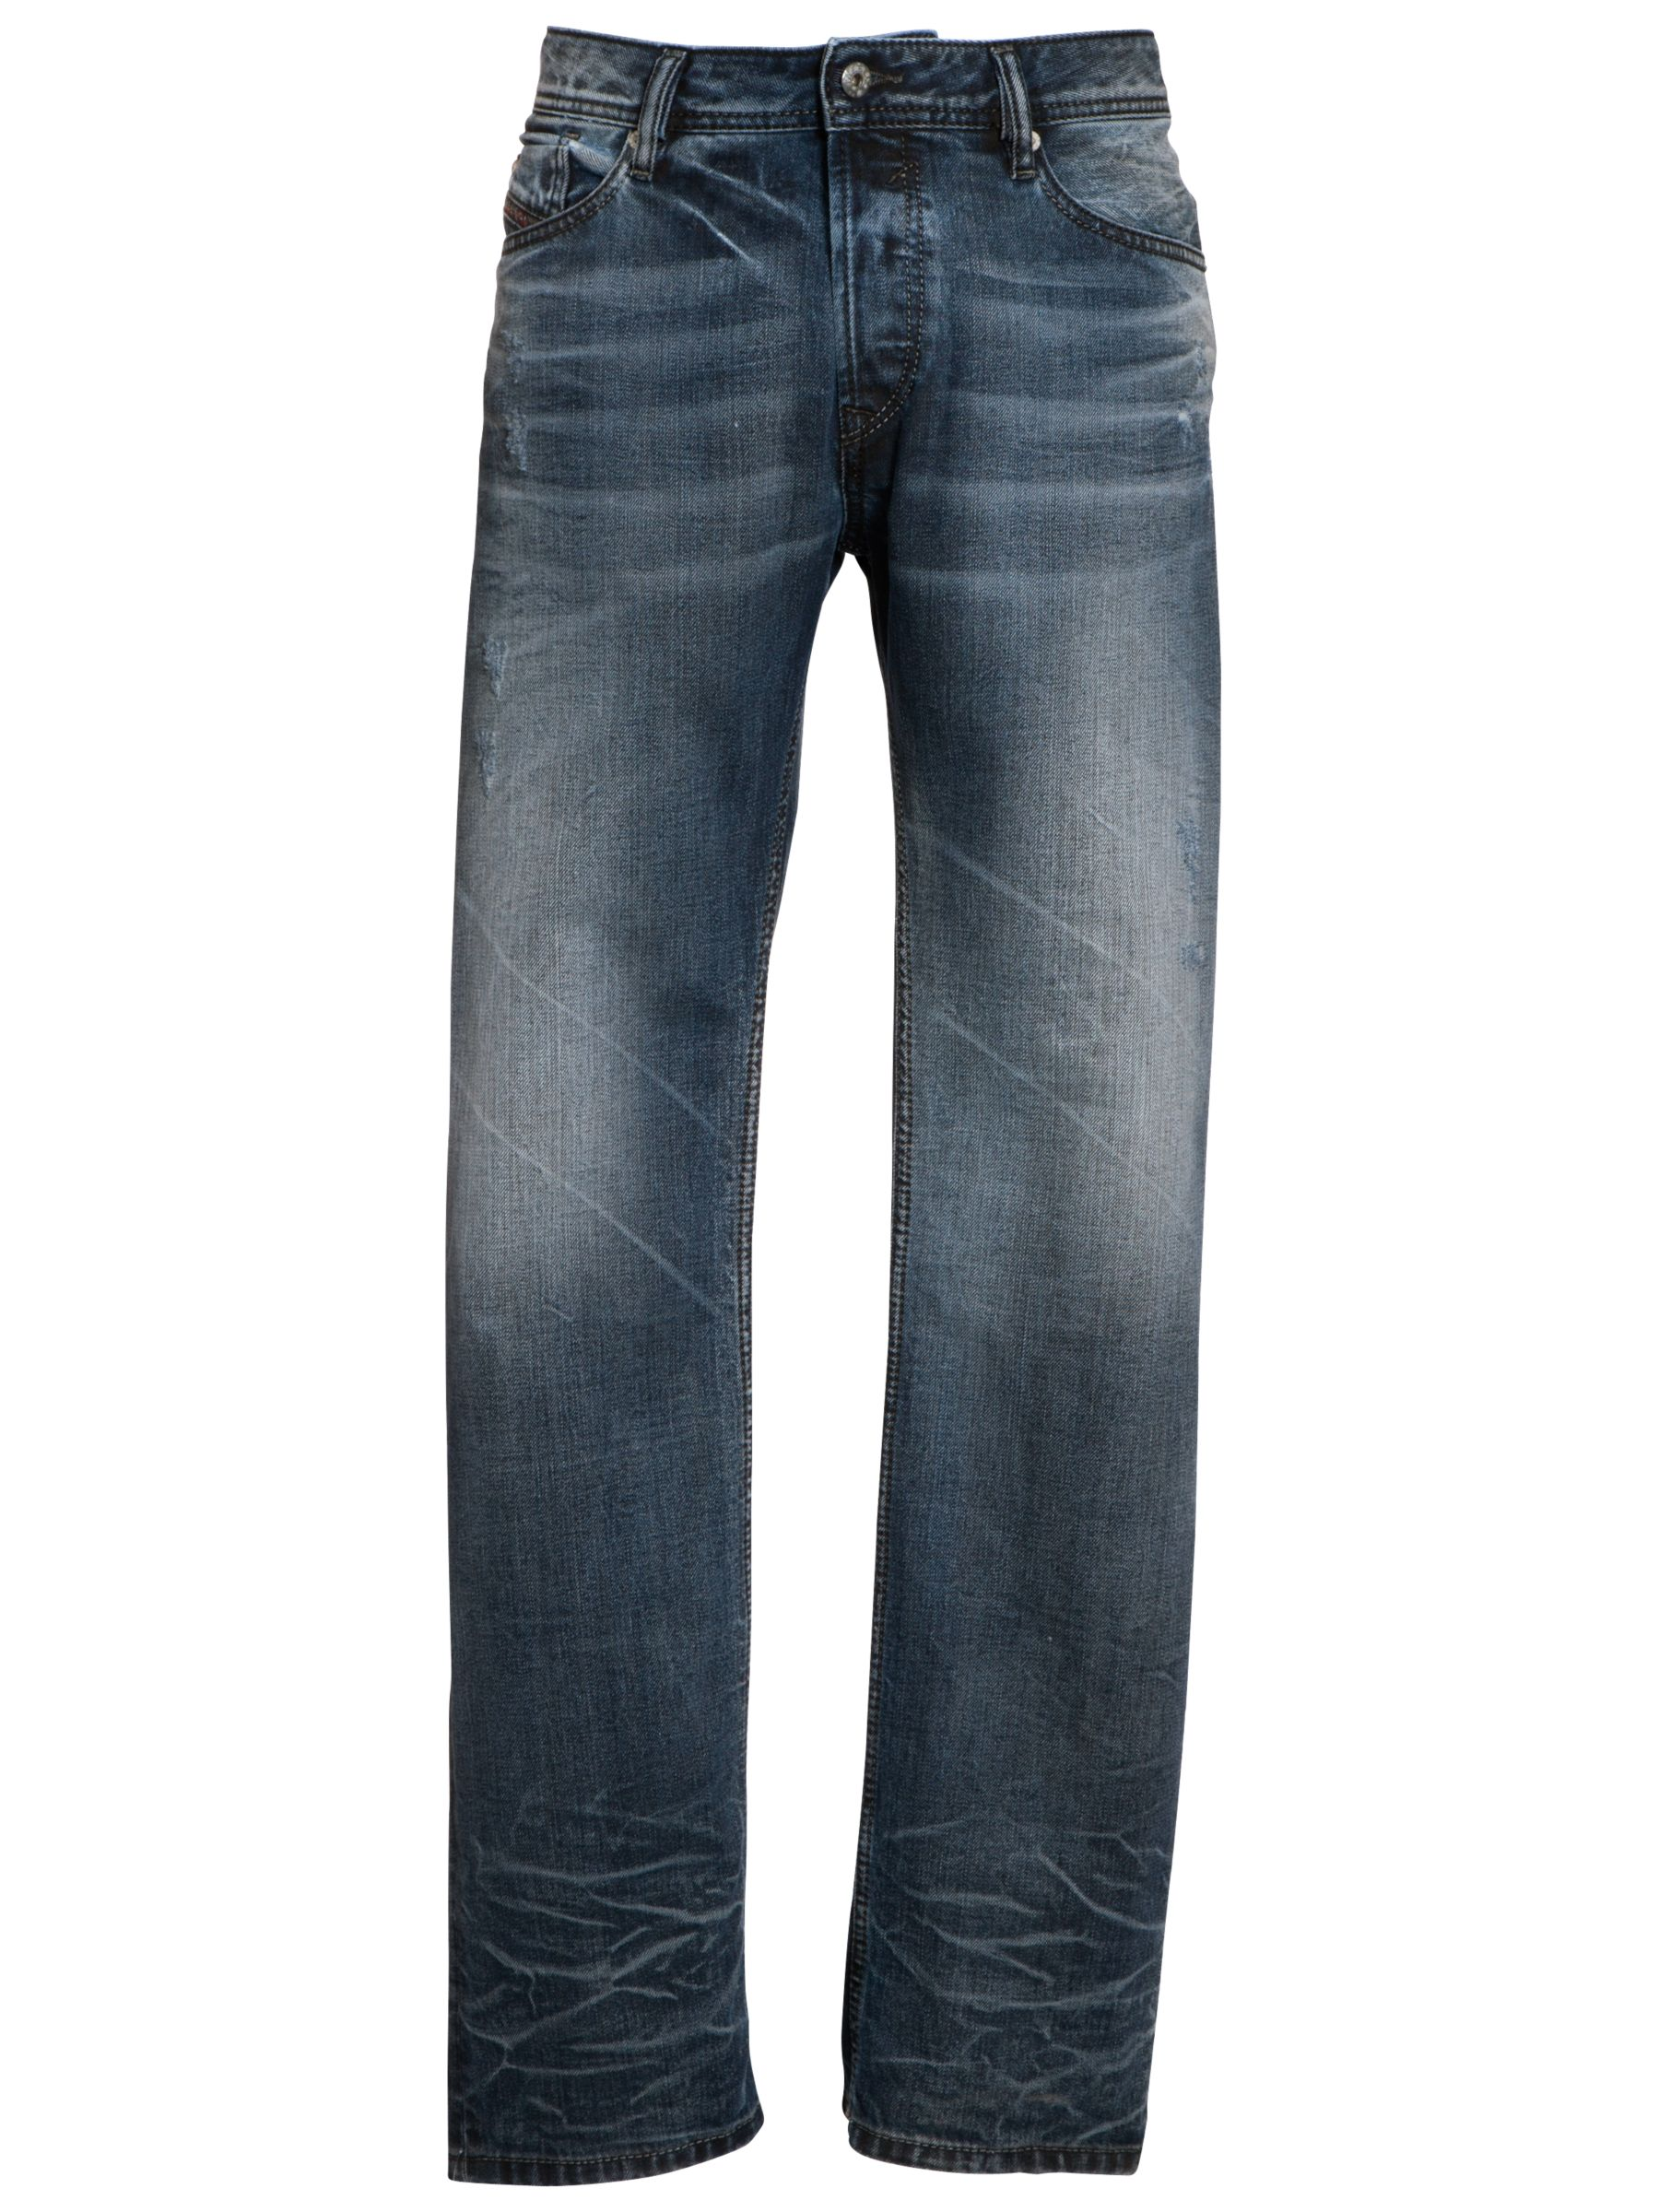 diesel jeans - compare prices on Men's Trousers - Page 6